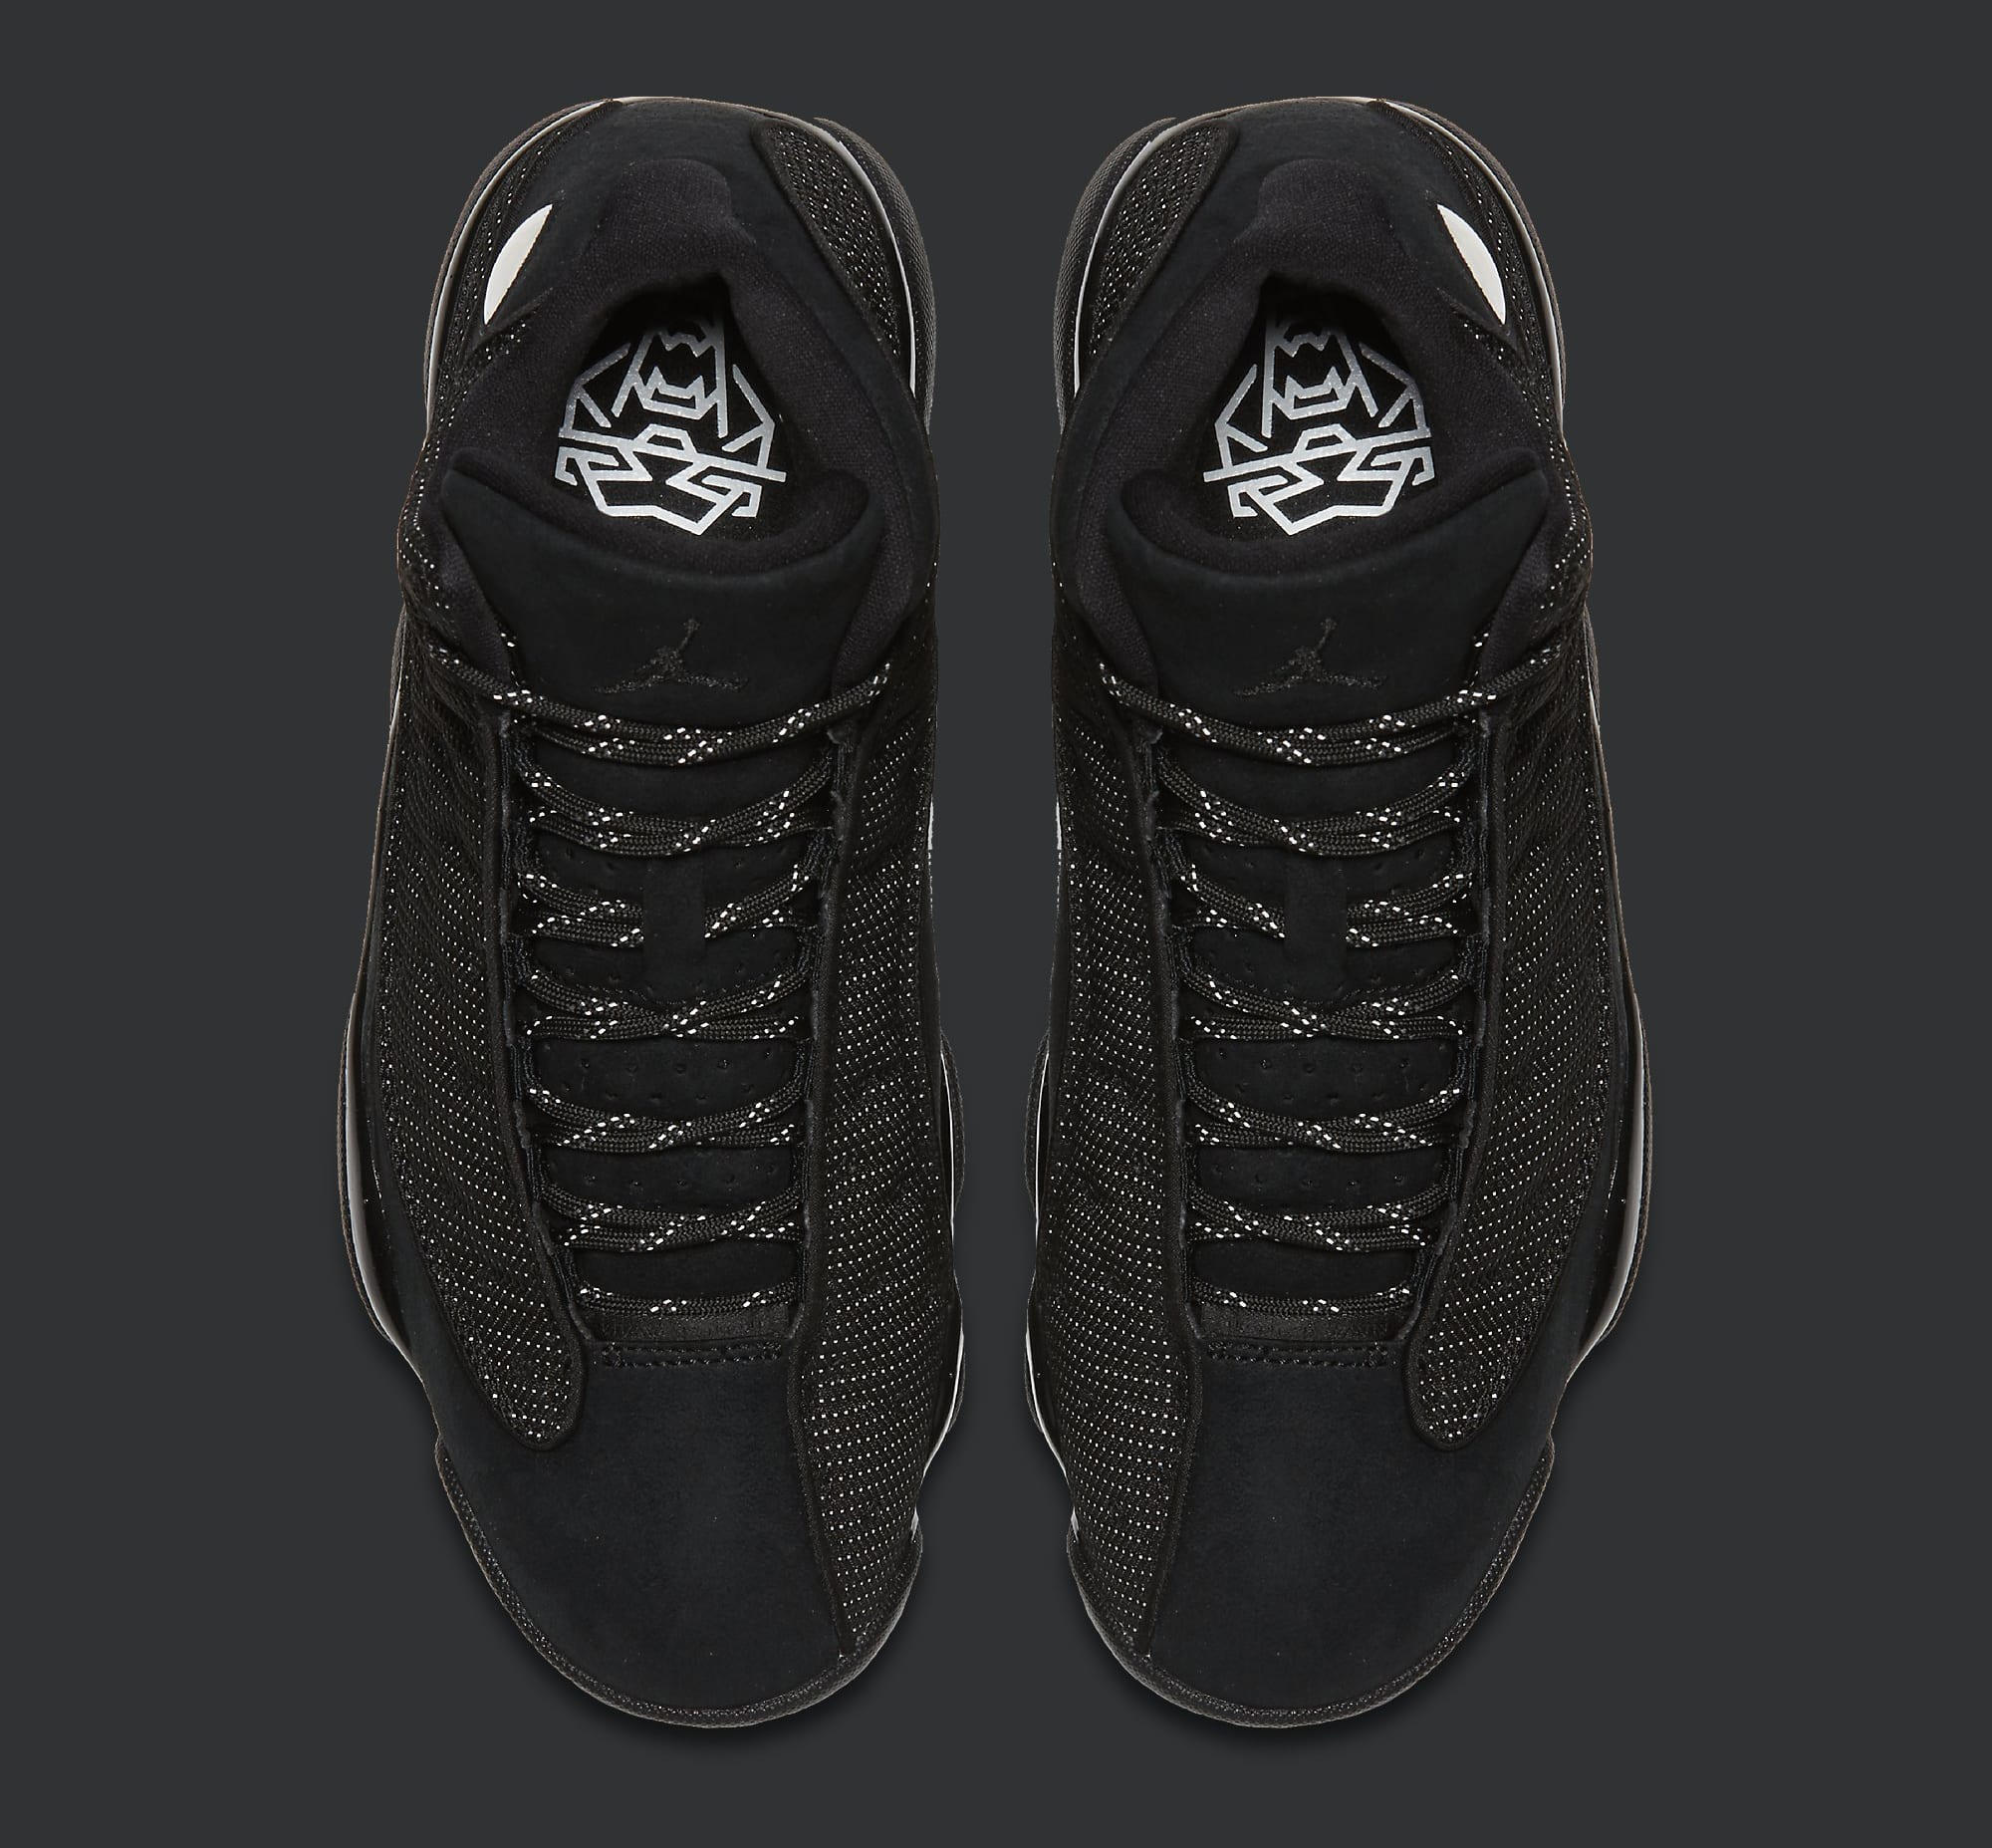 Black Cat Air Jordan 13 414571-011 Top